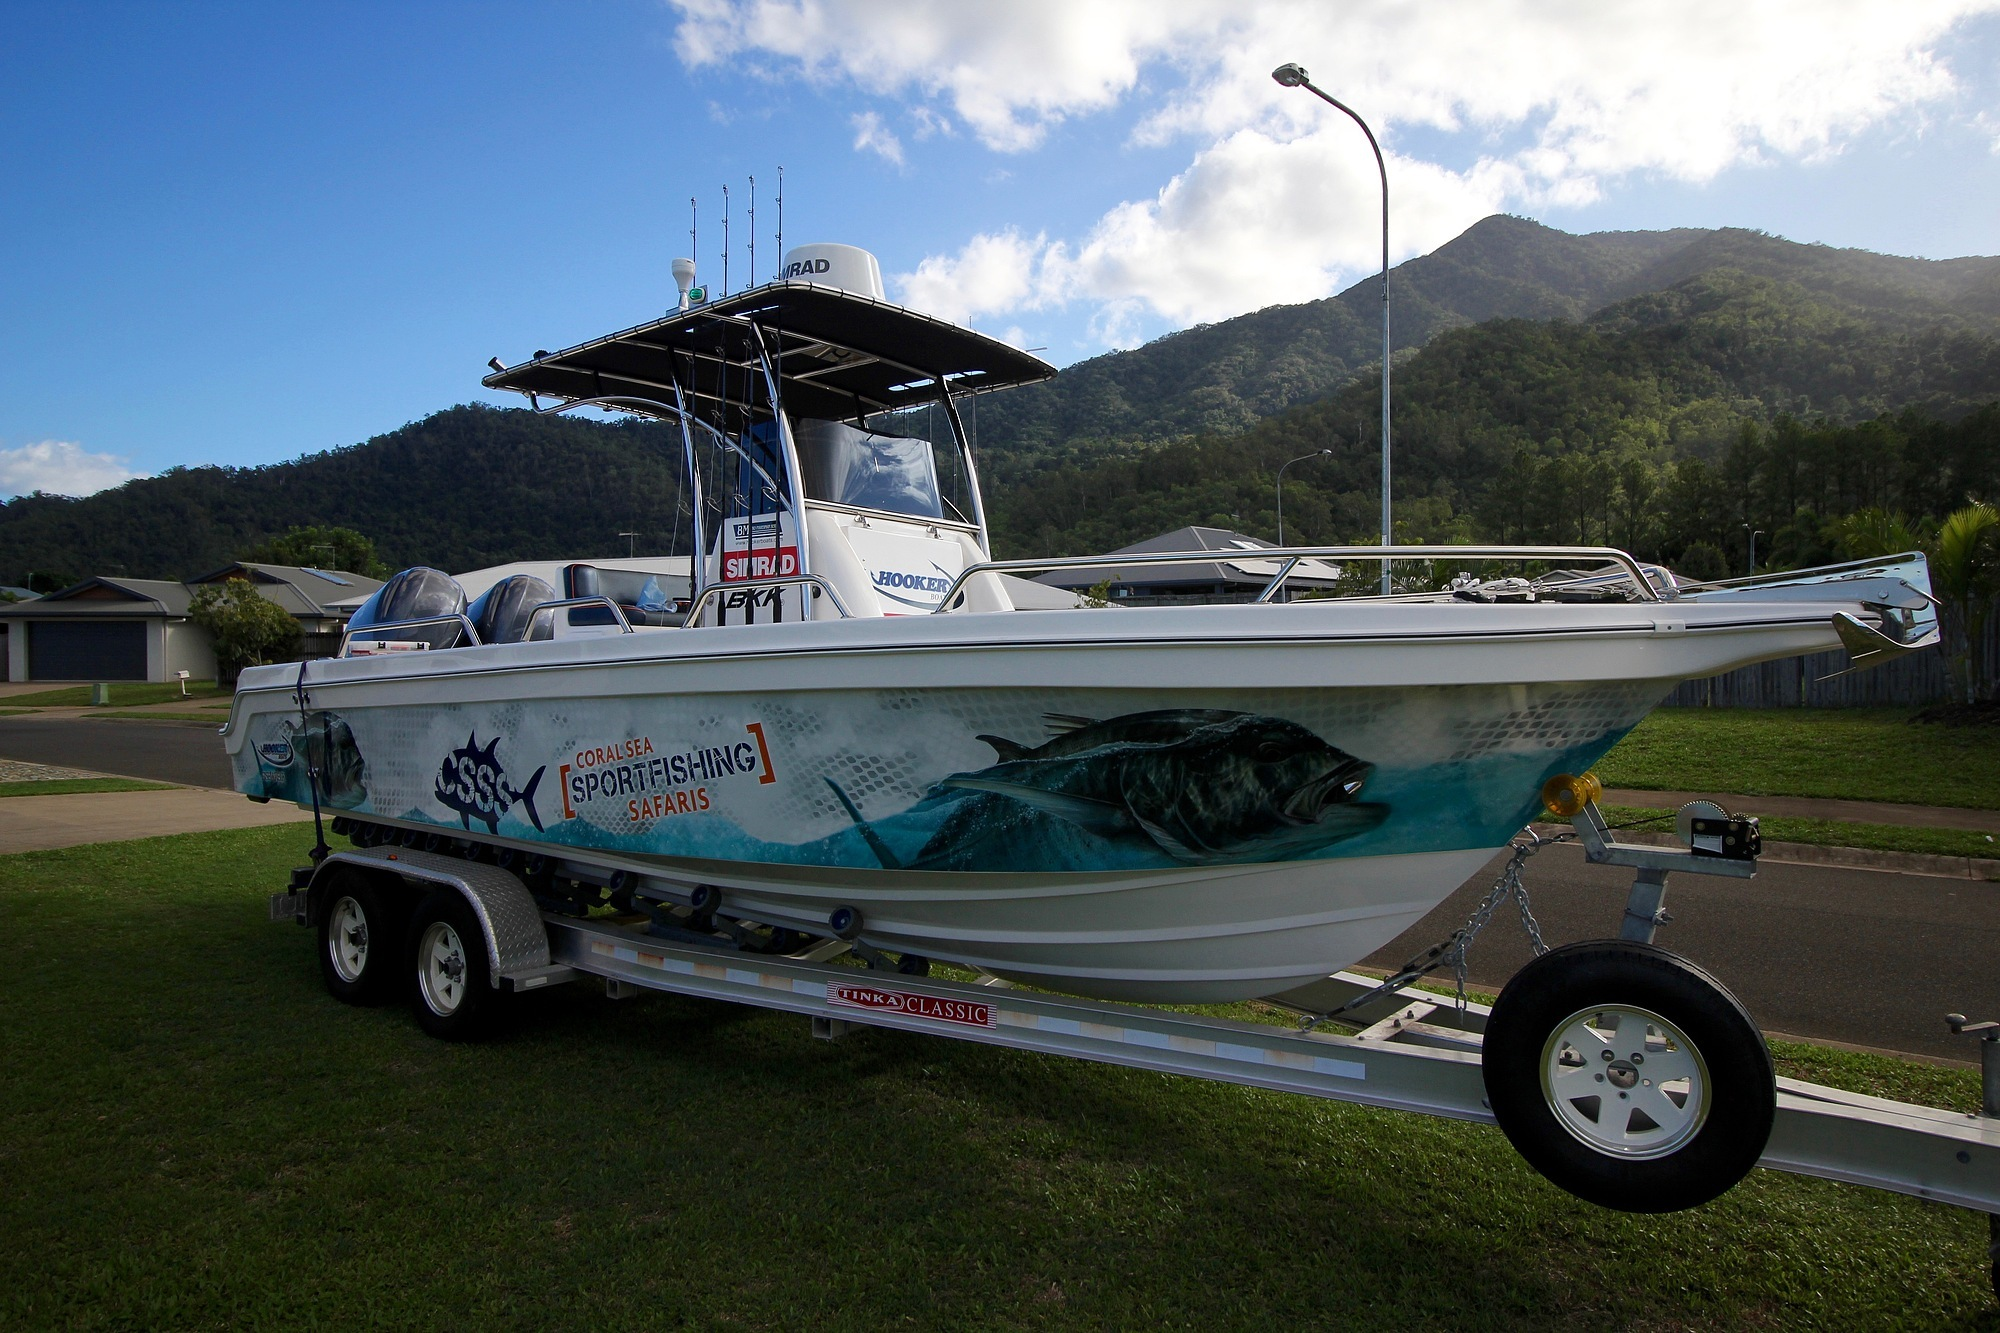 Our custom built weapon of choice Insidious, an 8m Hooker Boats Pro Fisherman Series 2.